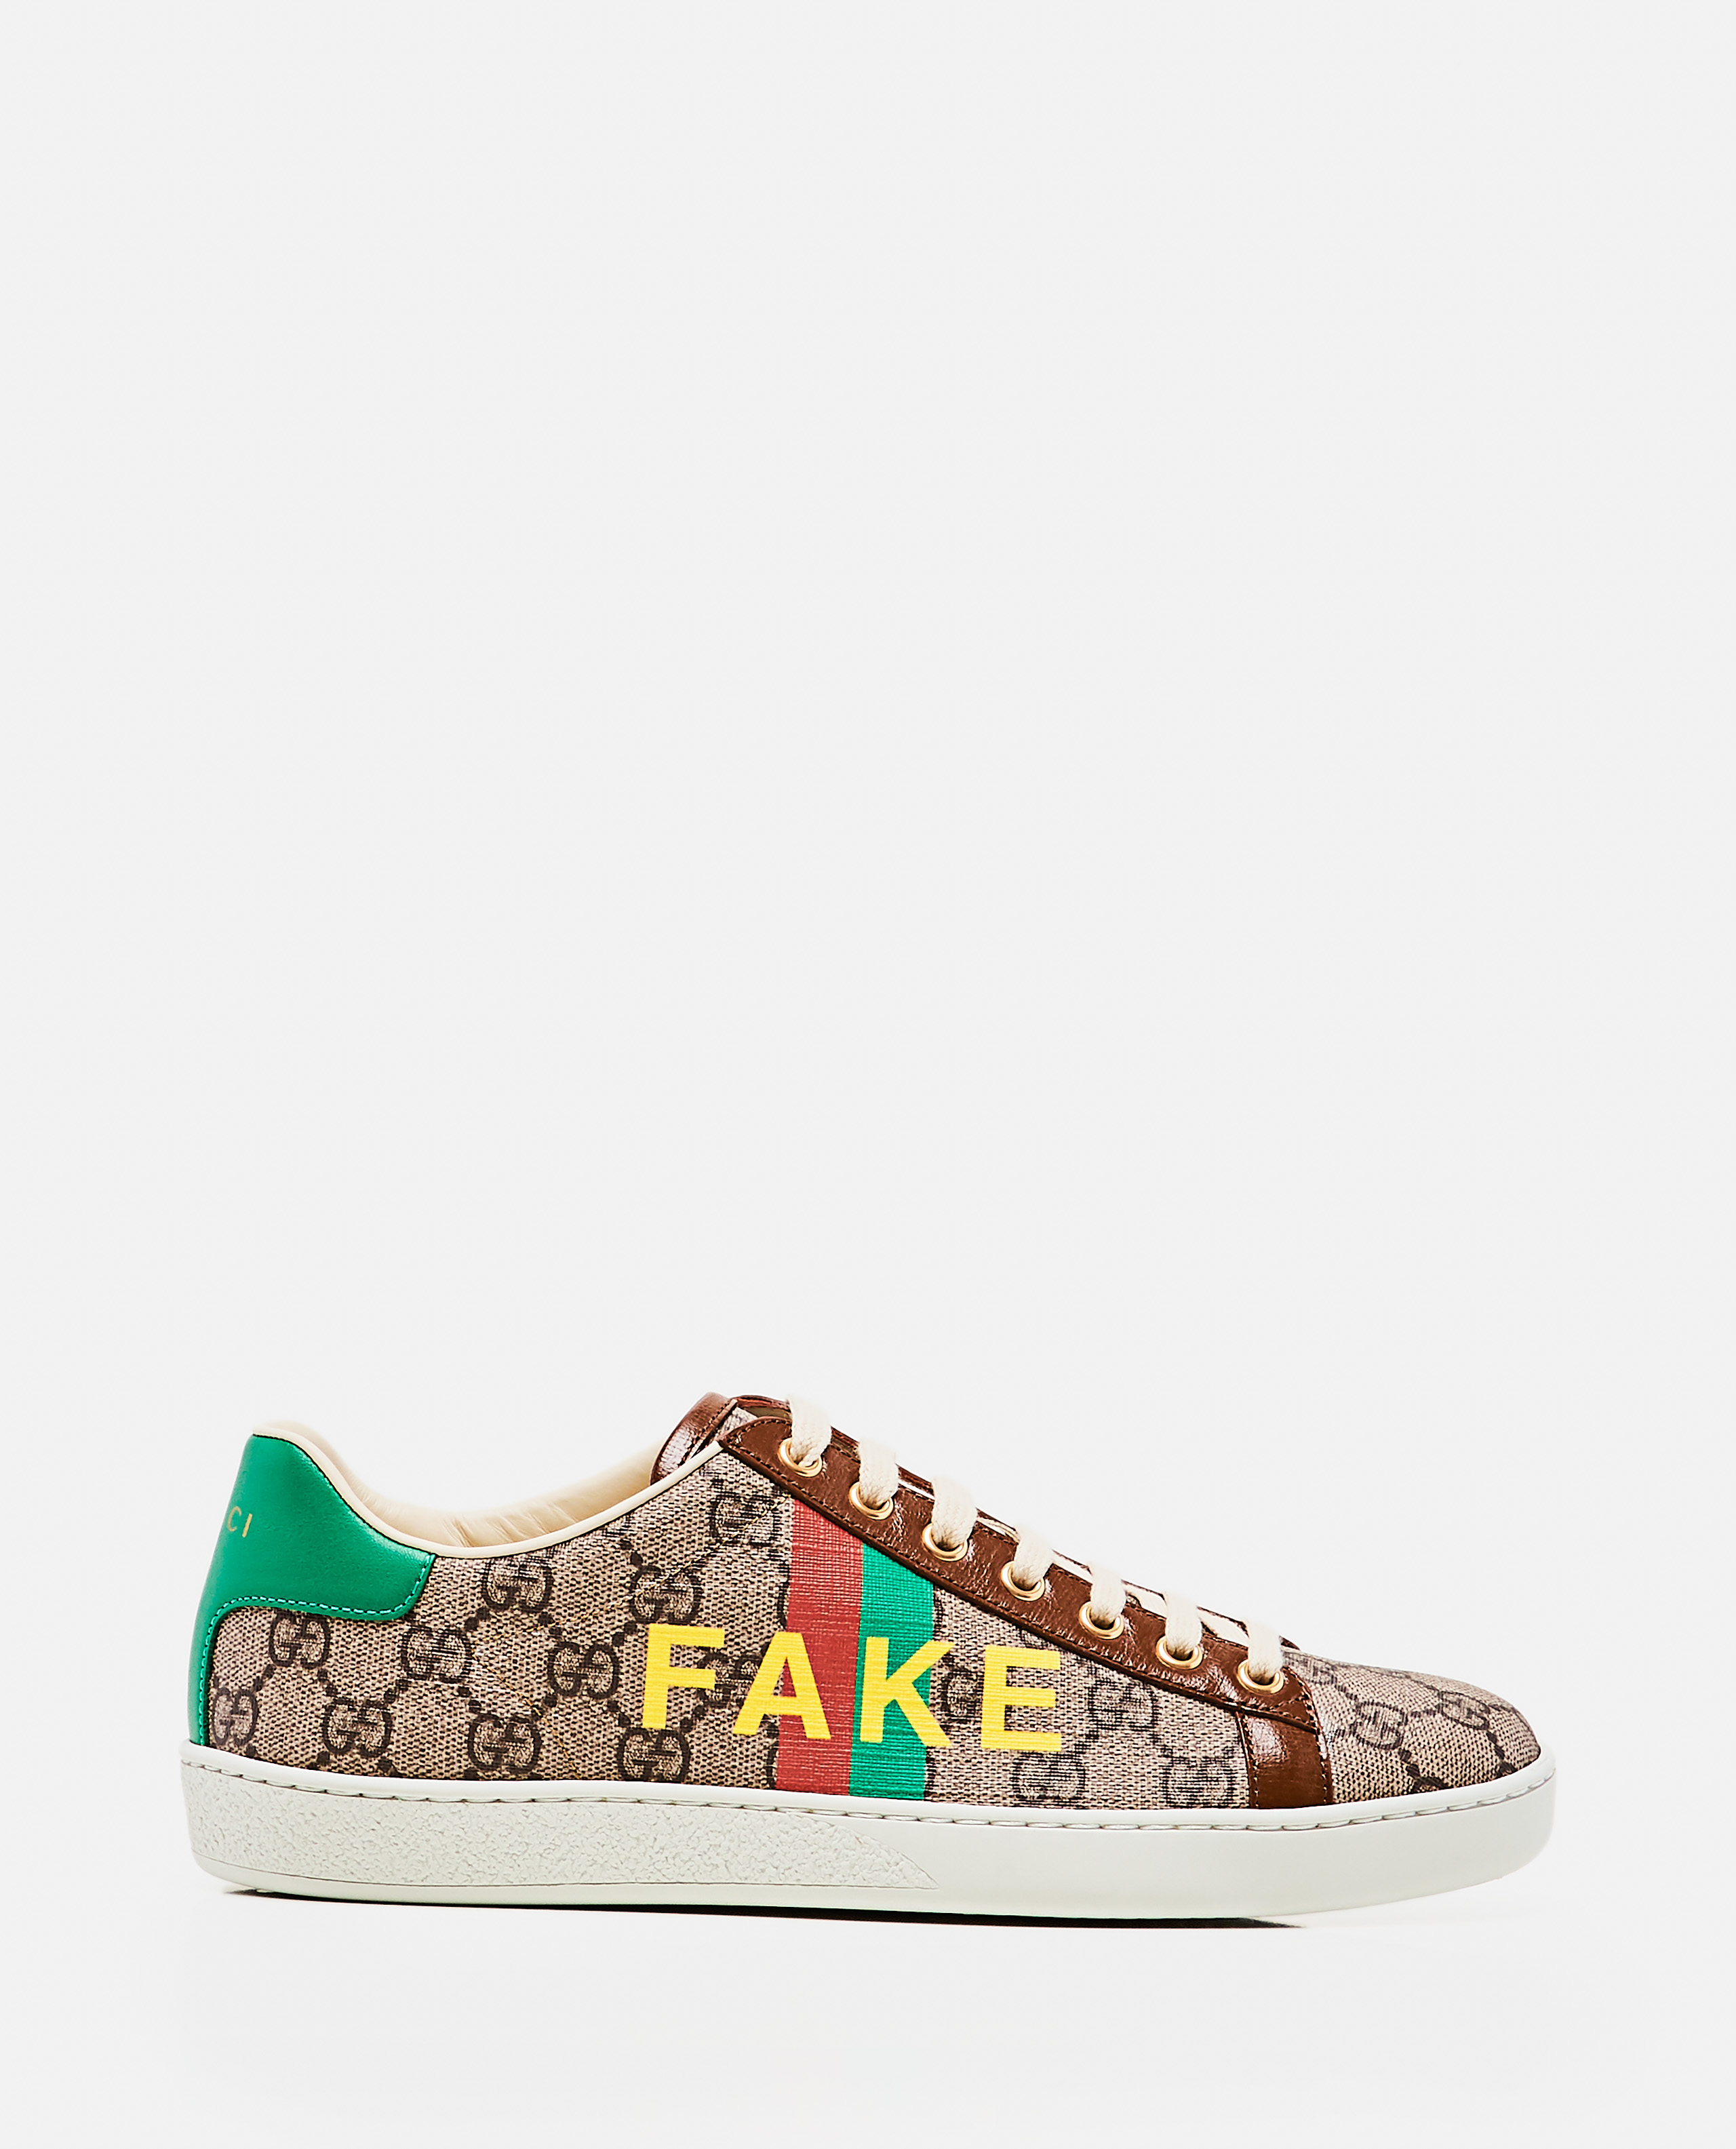 Ace sneaker with 'Fake / Not' print